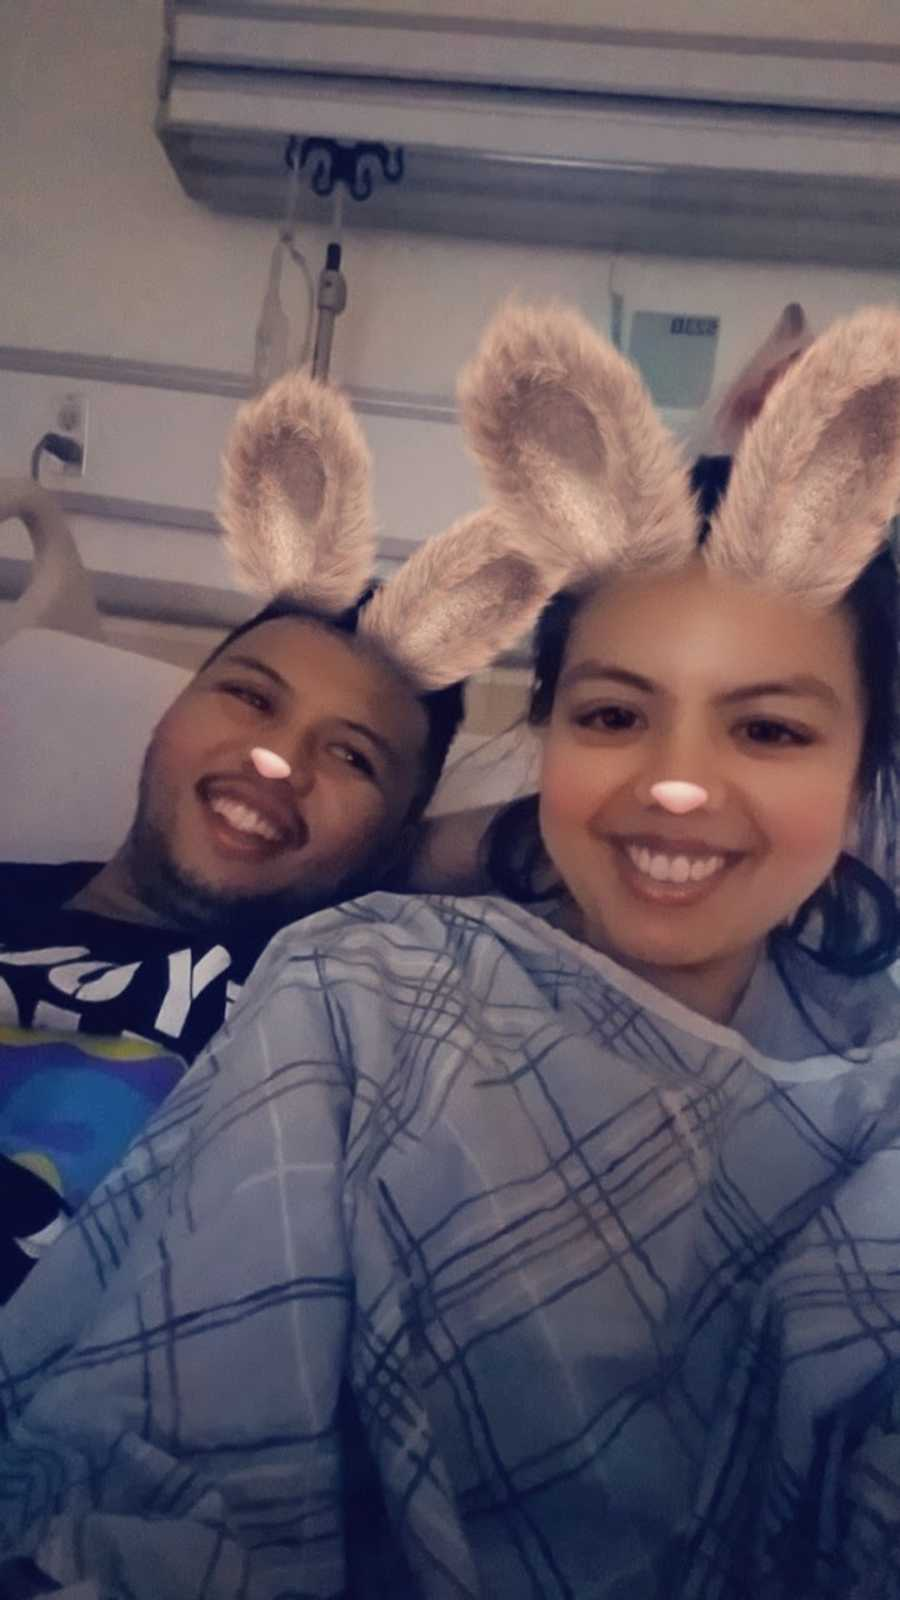 couple smiling with a snapchat filter on